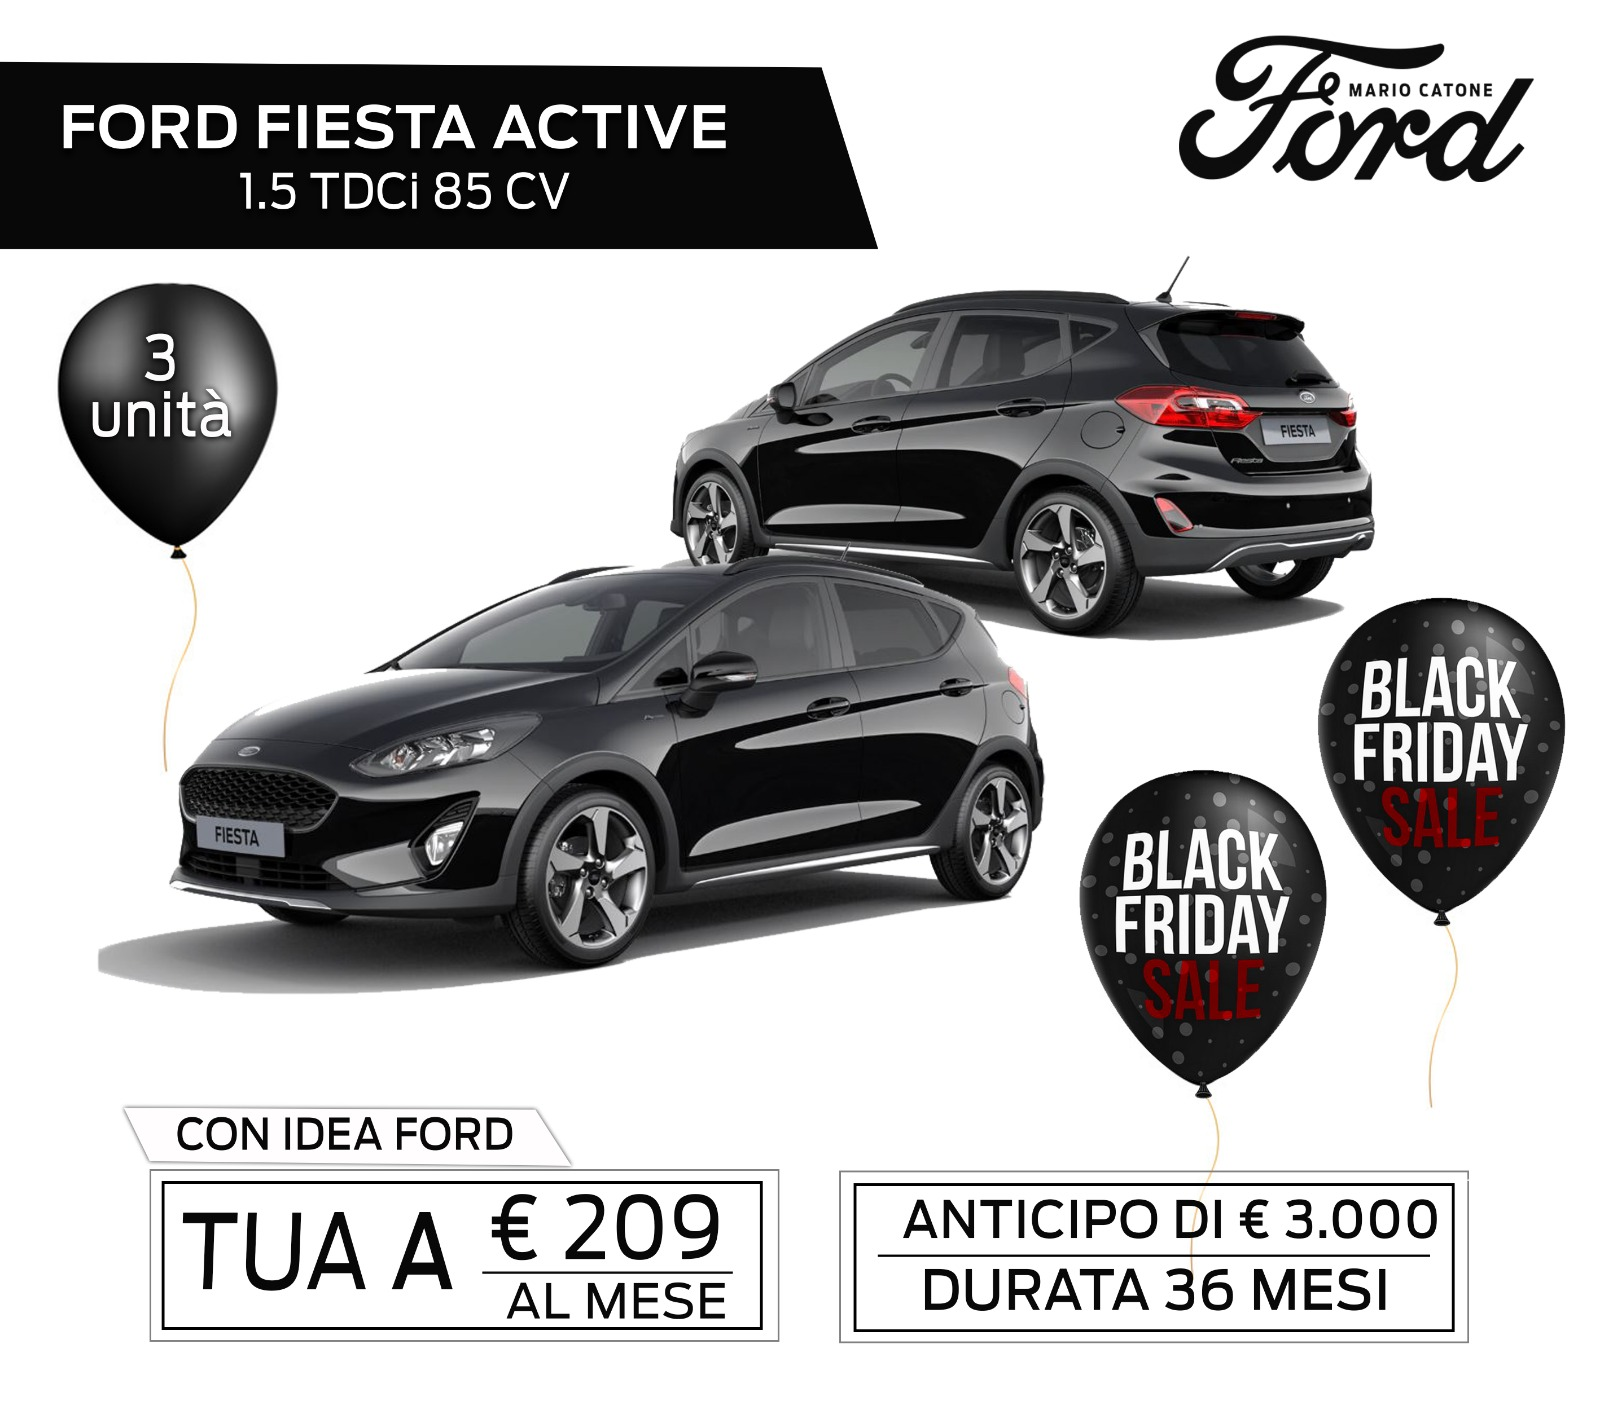 Fiesta Active Black Fridai